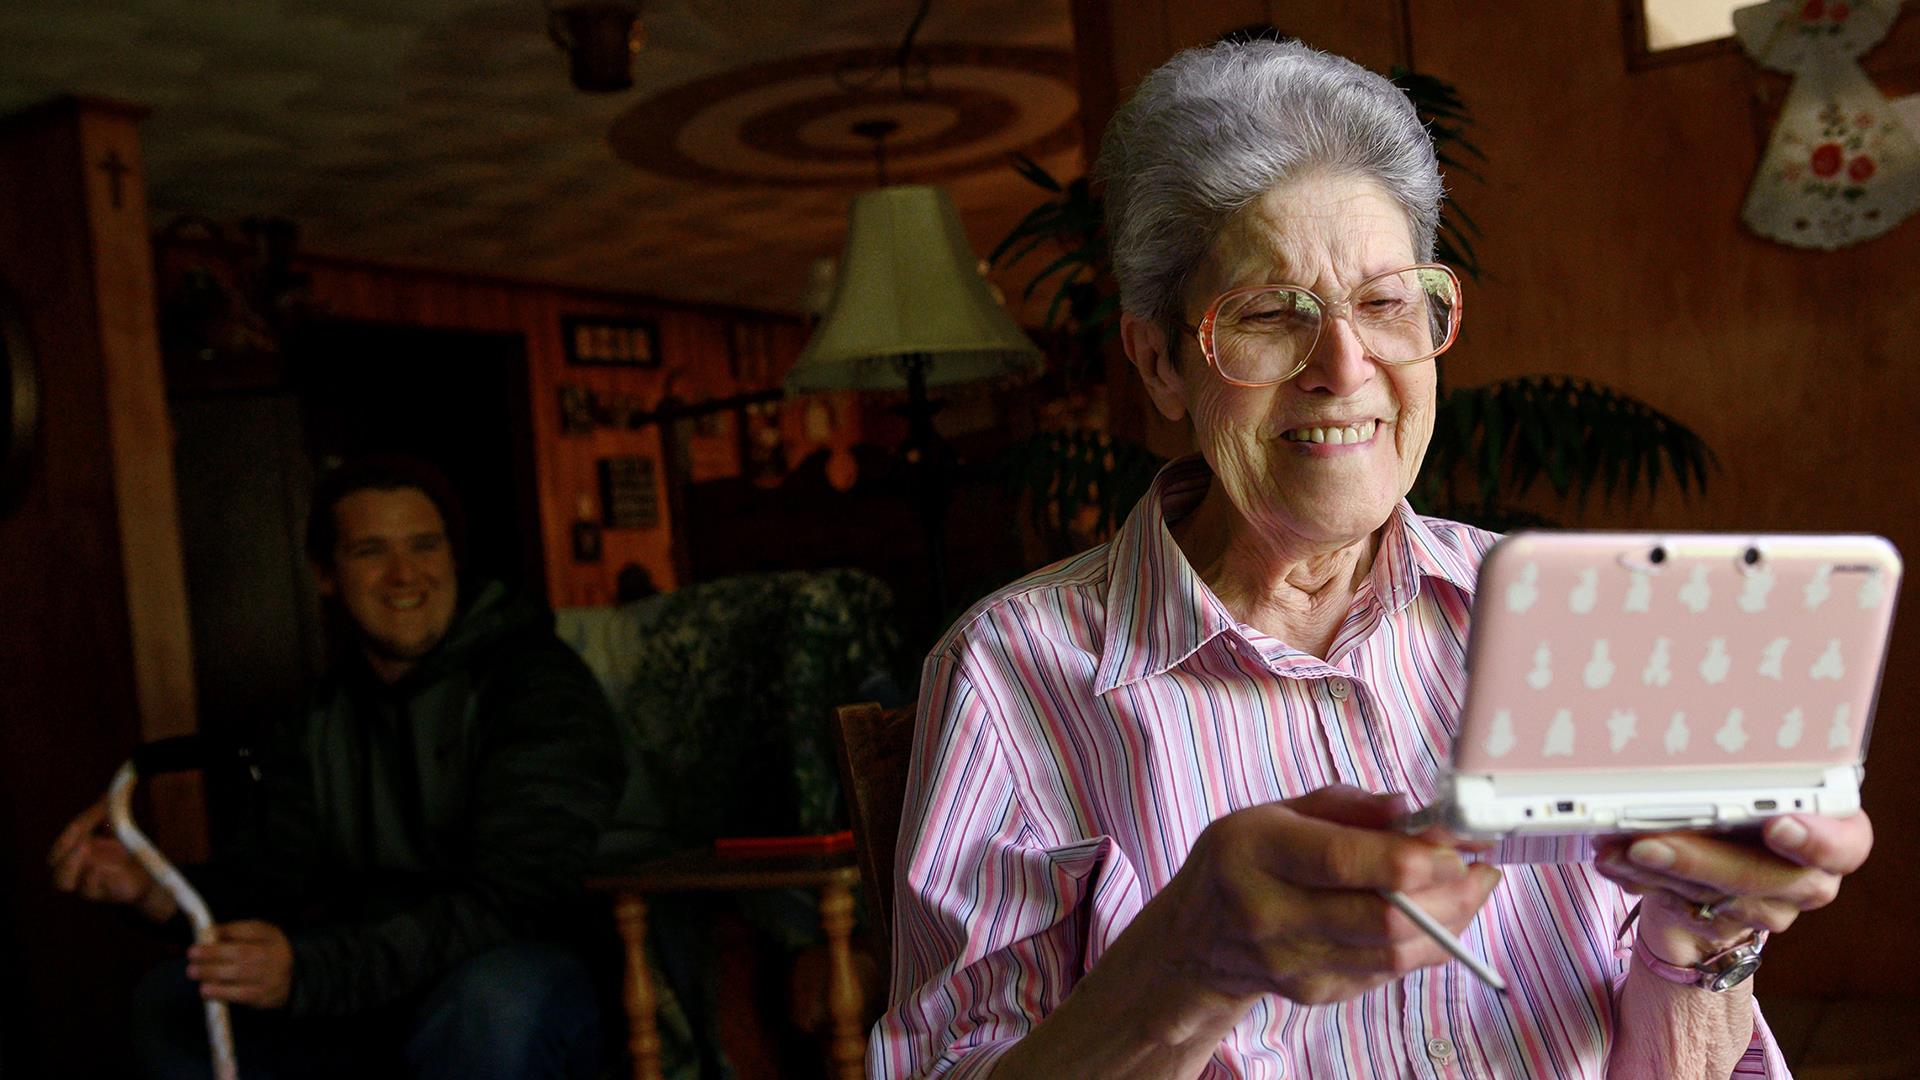 Senior citizens among fastest growing community in online gaming